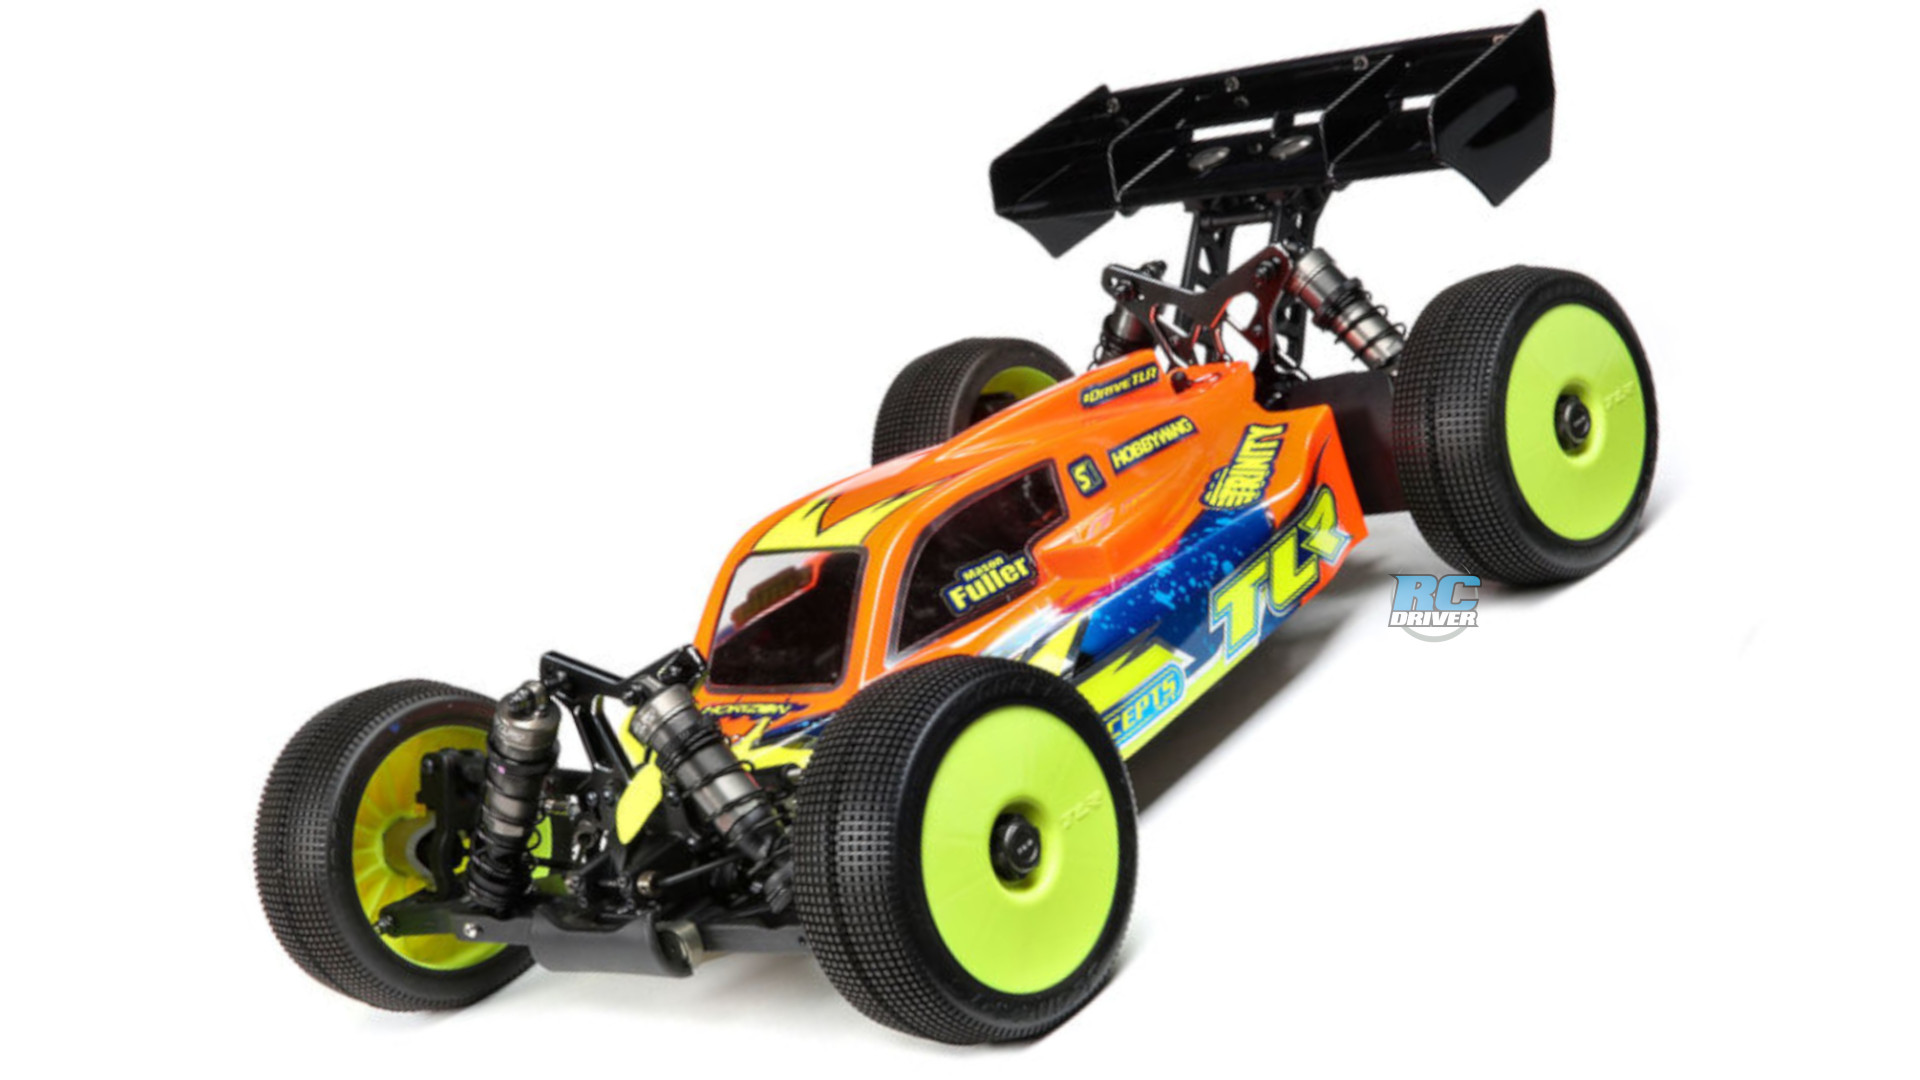 TLR 8IGHT-XE ELITE 4WD Electric Buggy Race Kit